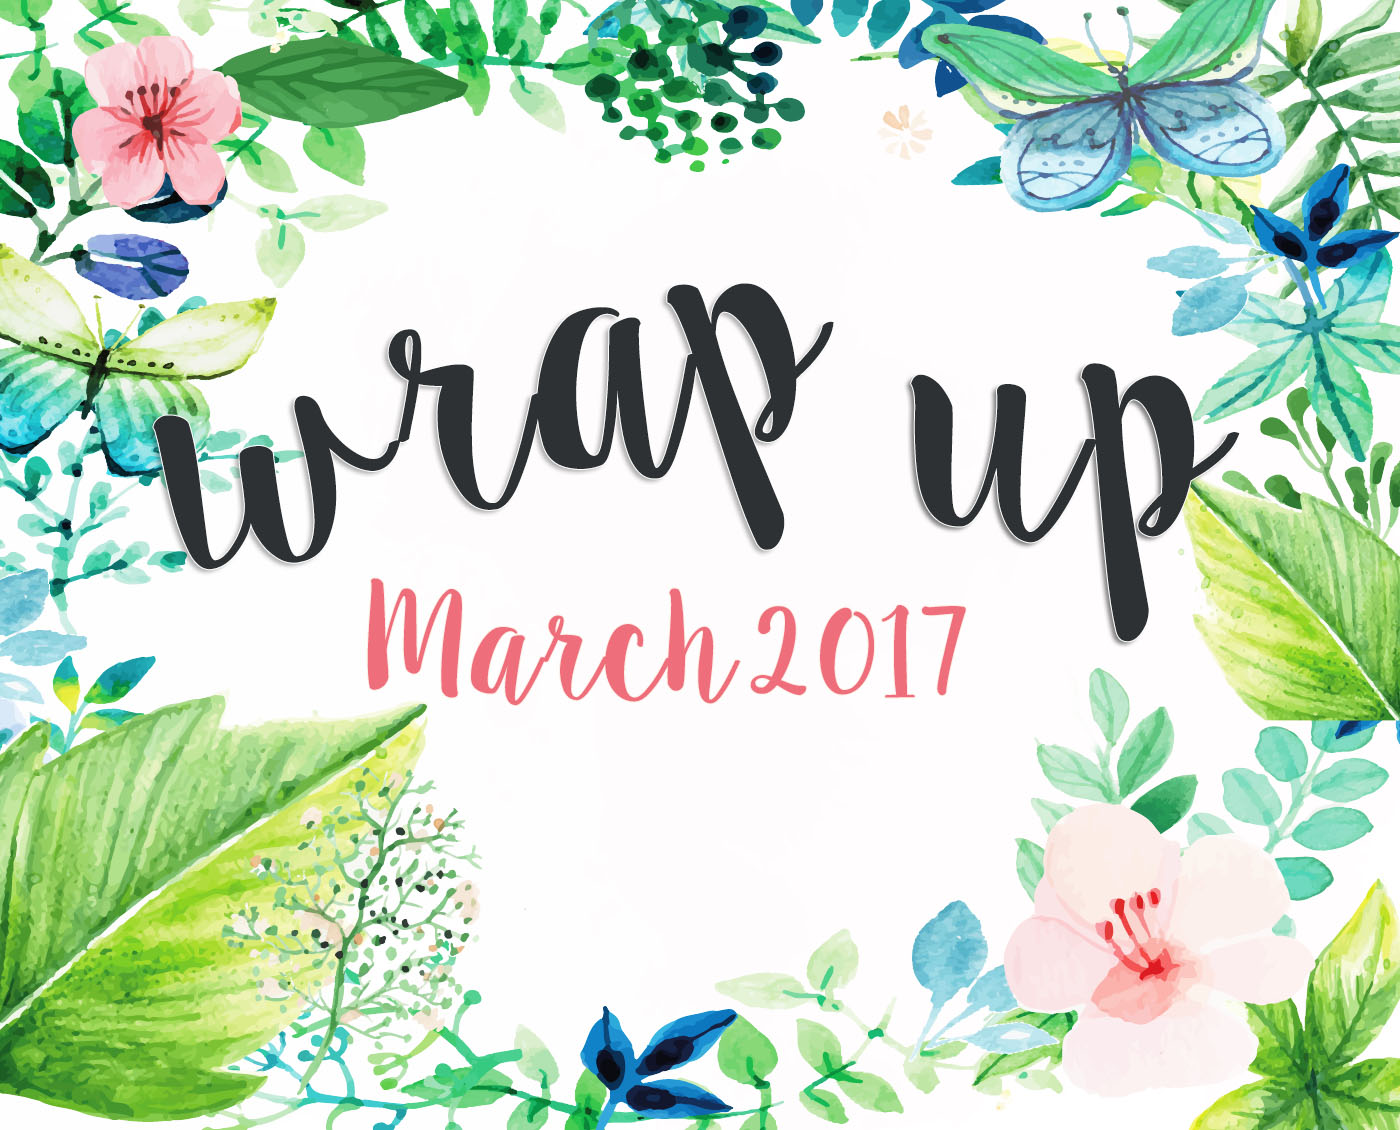 Wrap up march 2017